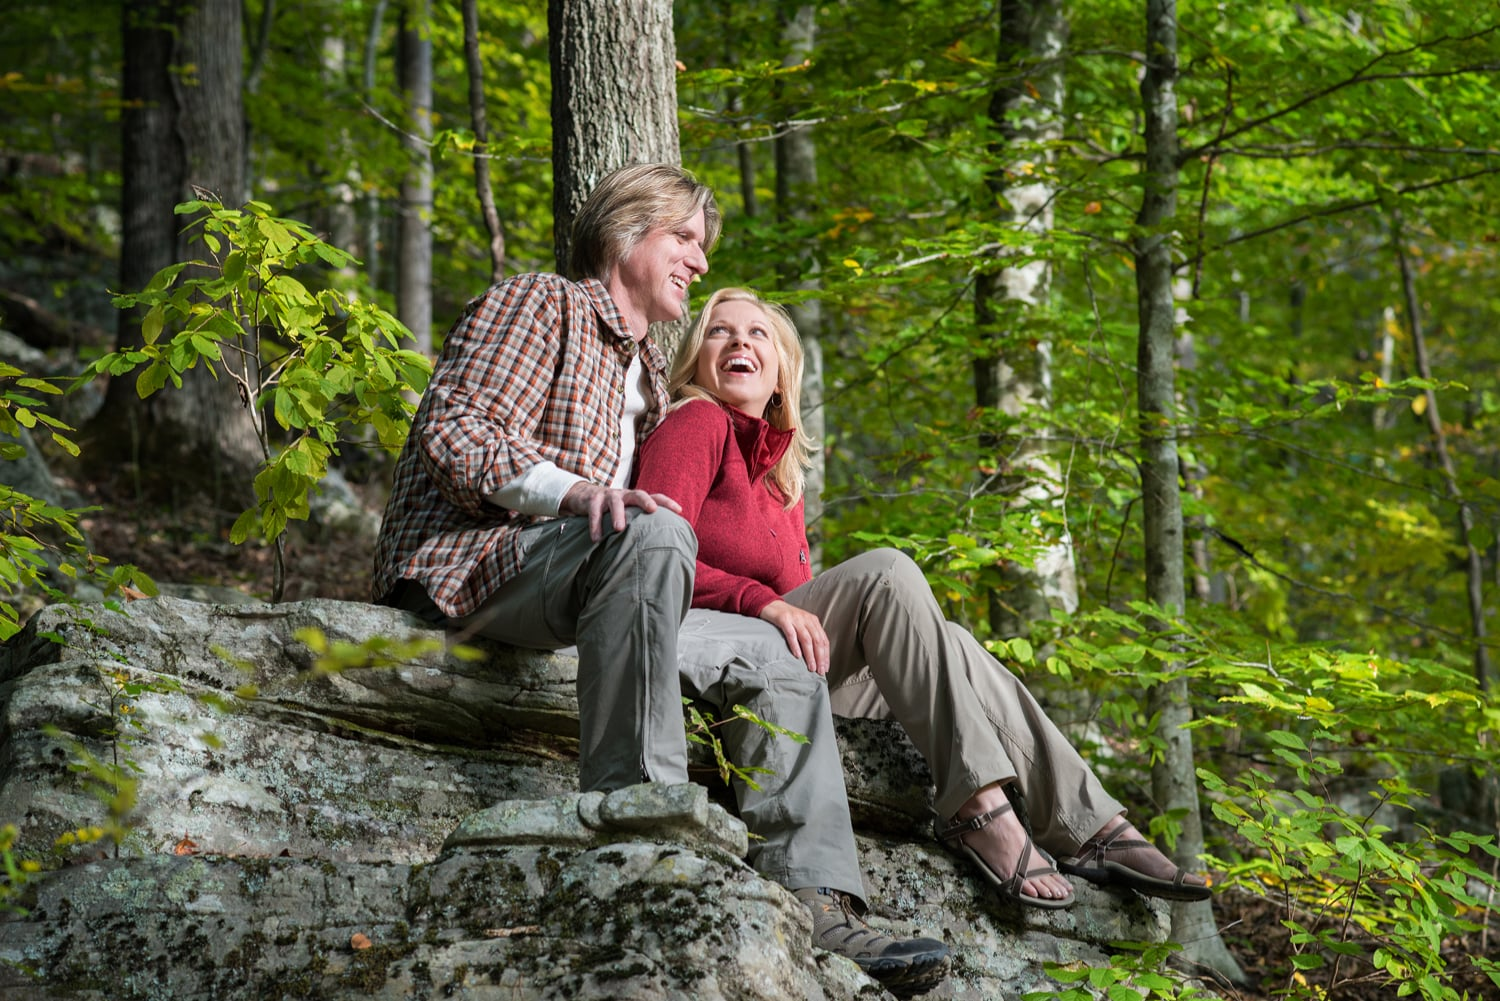 Couple laughing together sitting on a rock in the woods